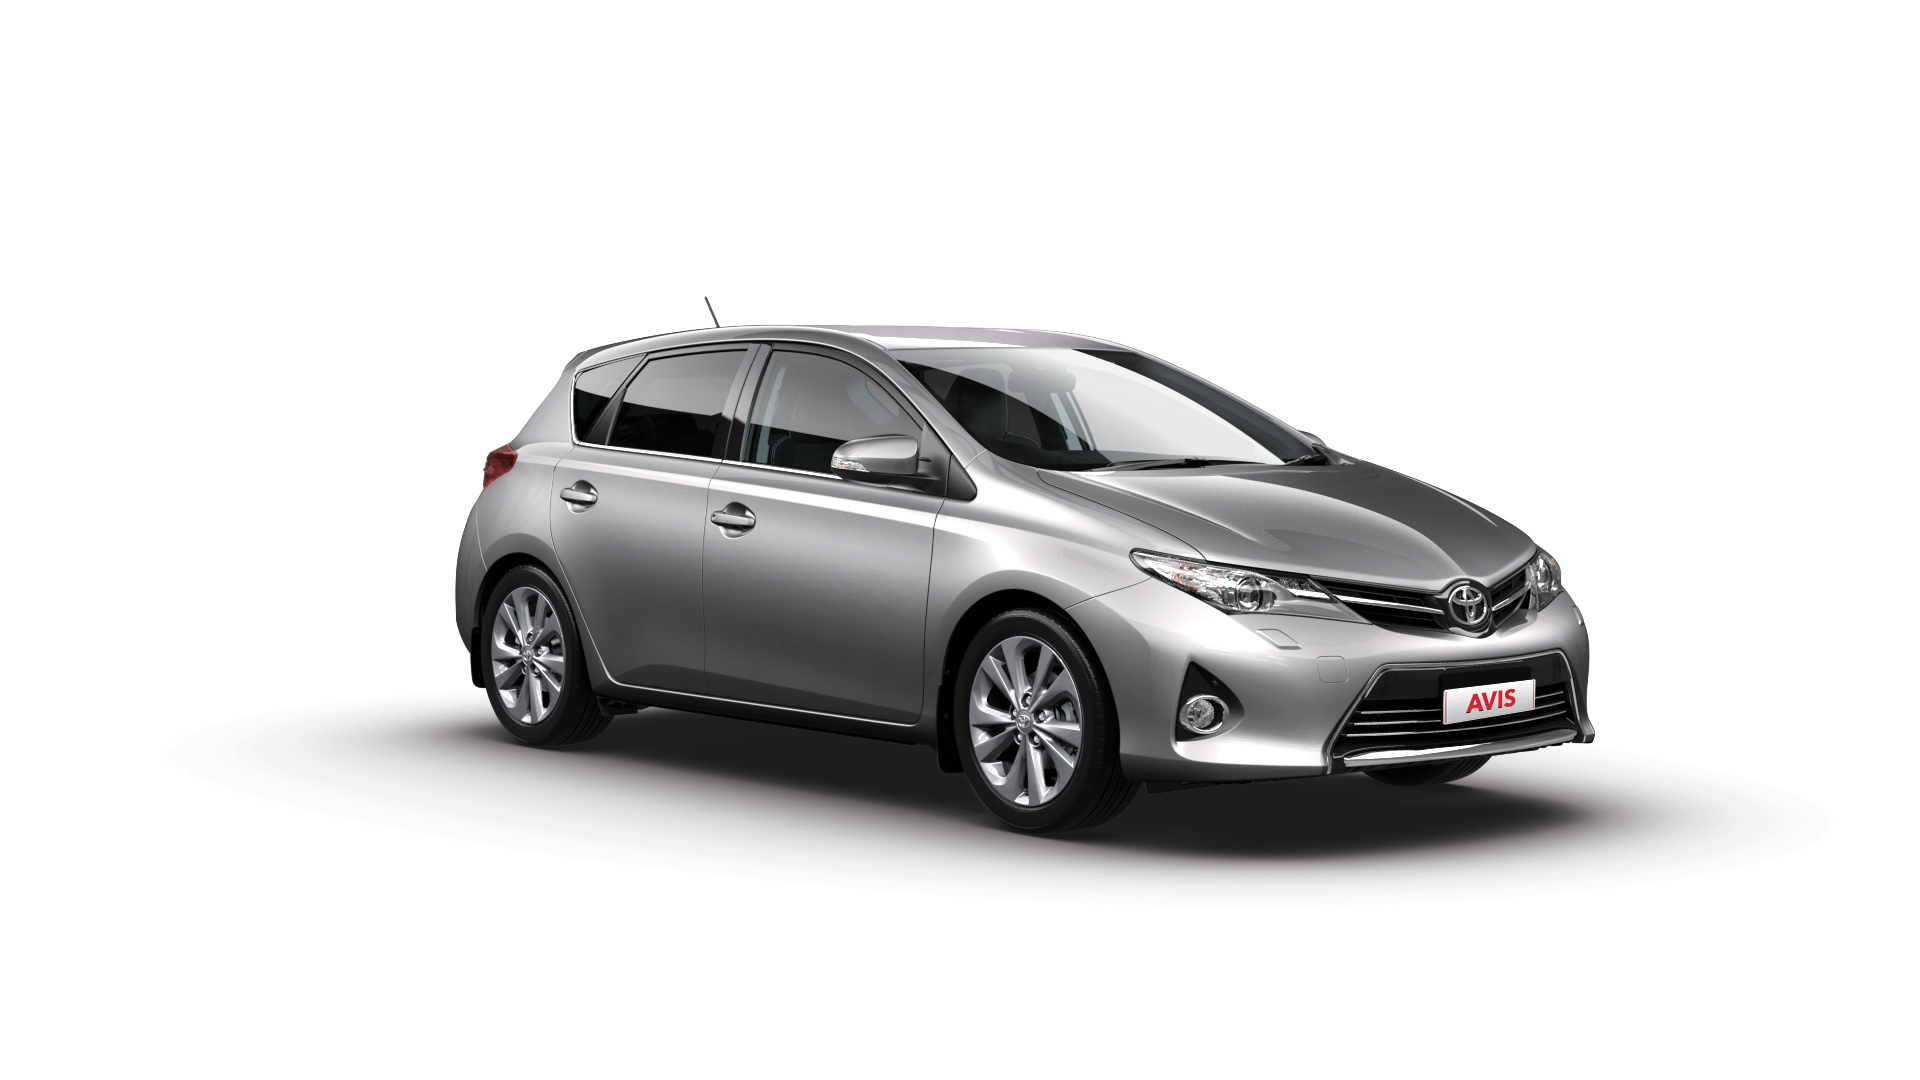 Avis Travel Agents And Wholesalers Group C Toyota Corolla Or